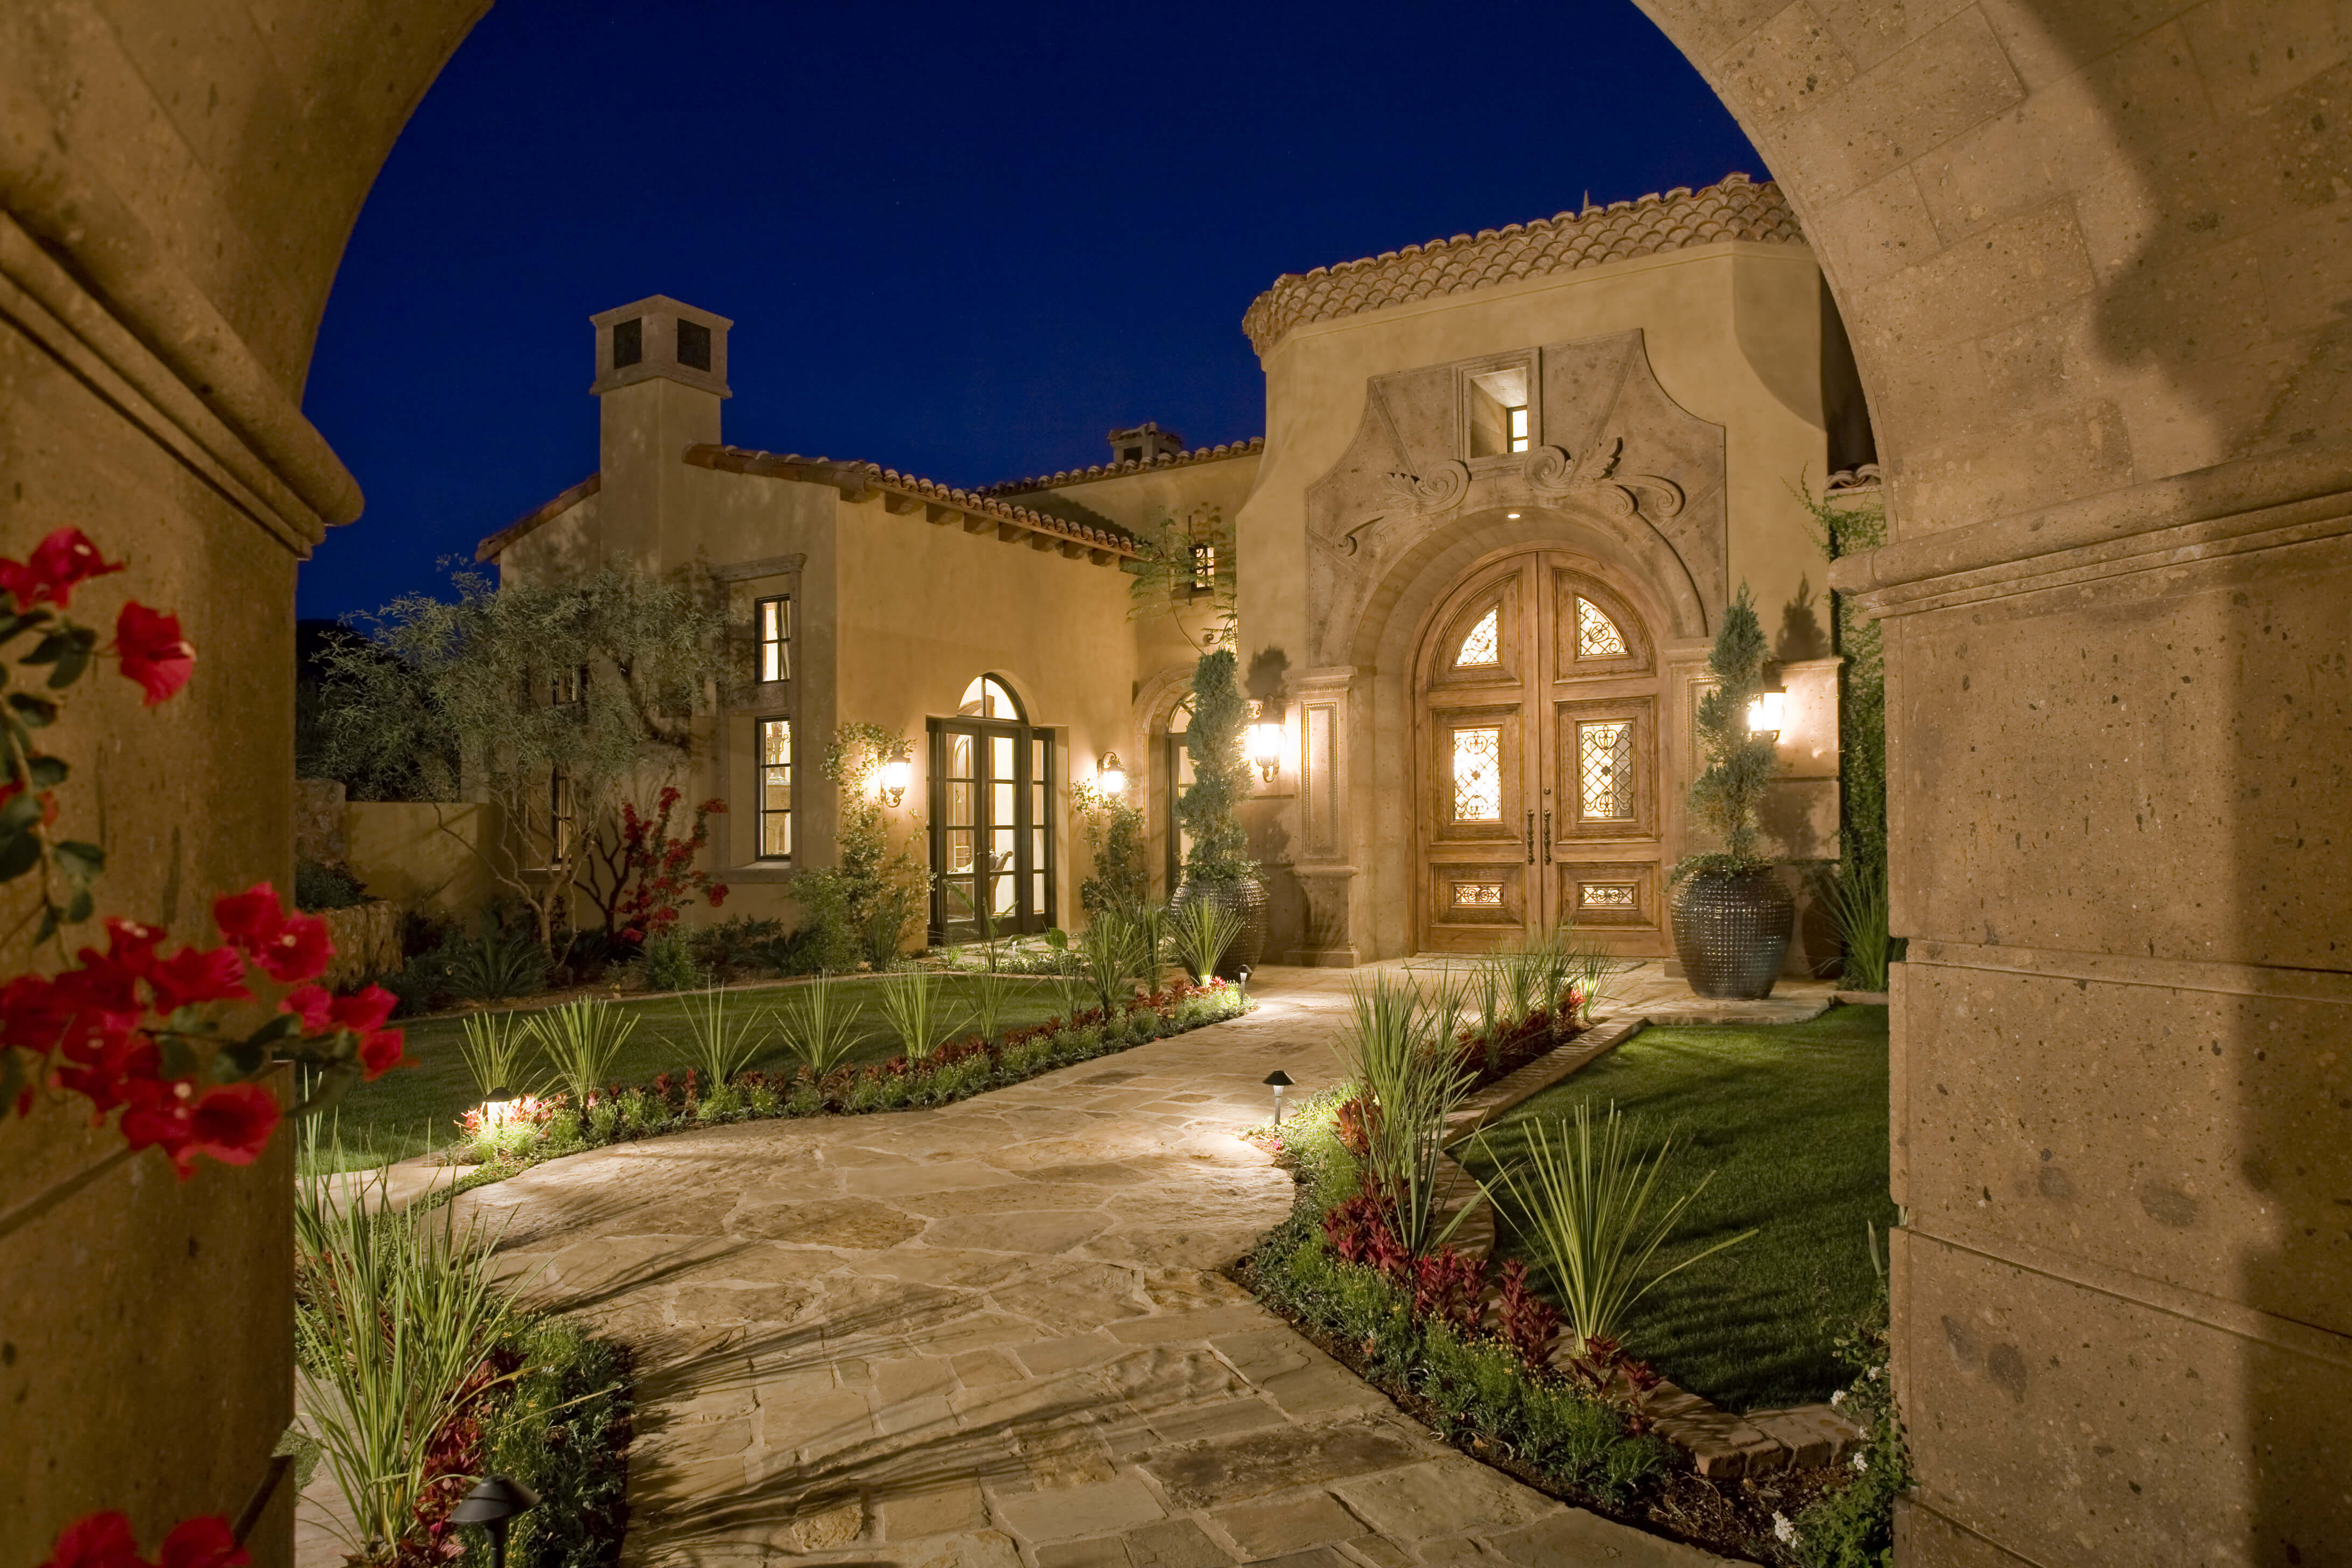 1-European-Entryway-Surround-and-Gate-Entry-Surround-in-Tobacco-Cantera-Stone